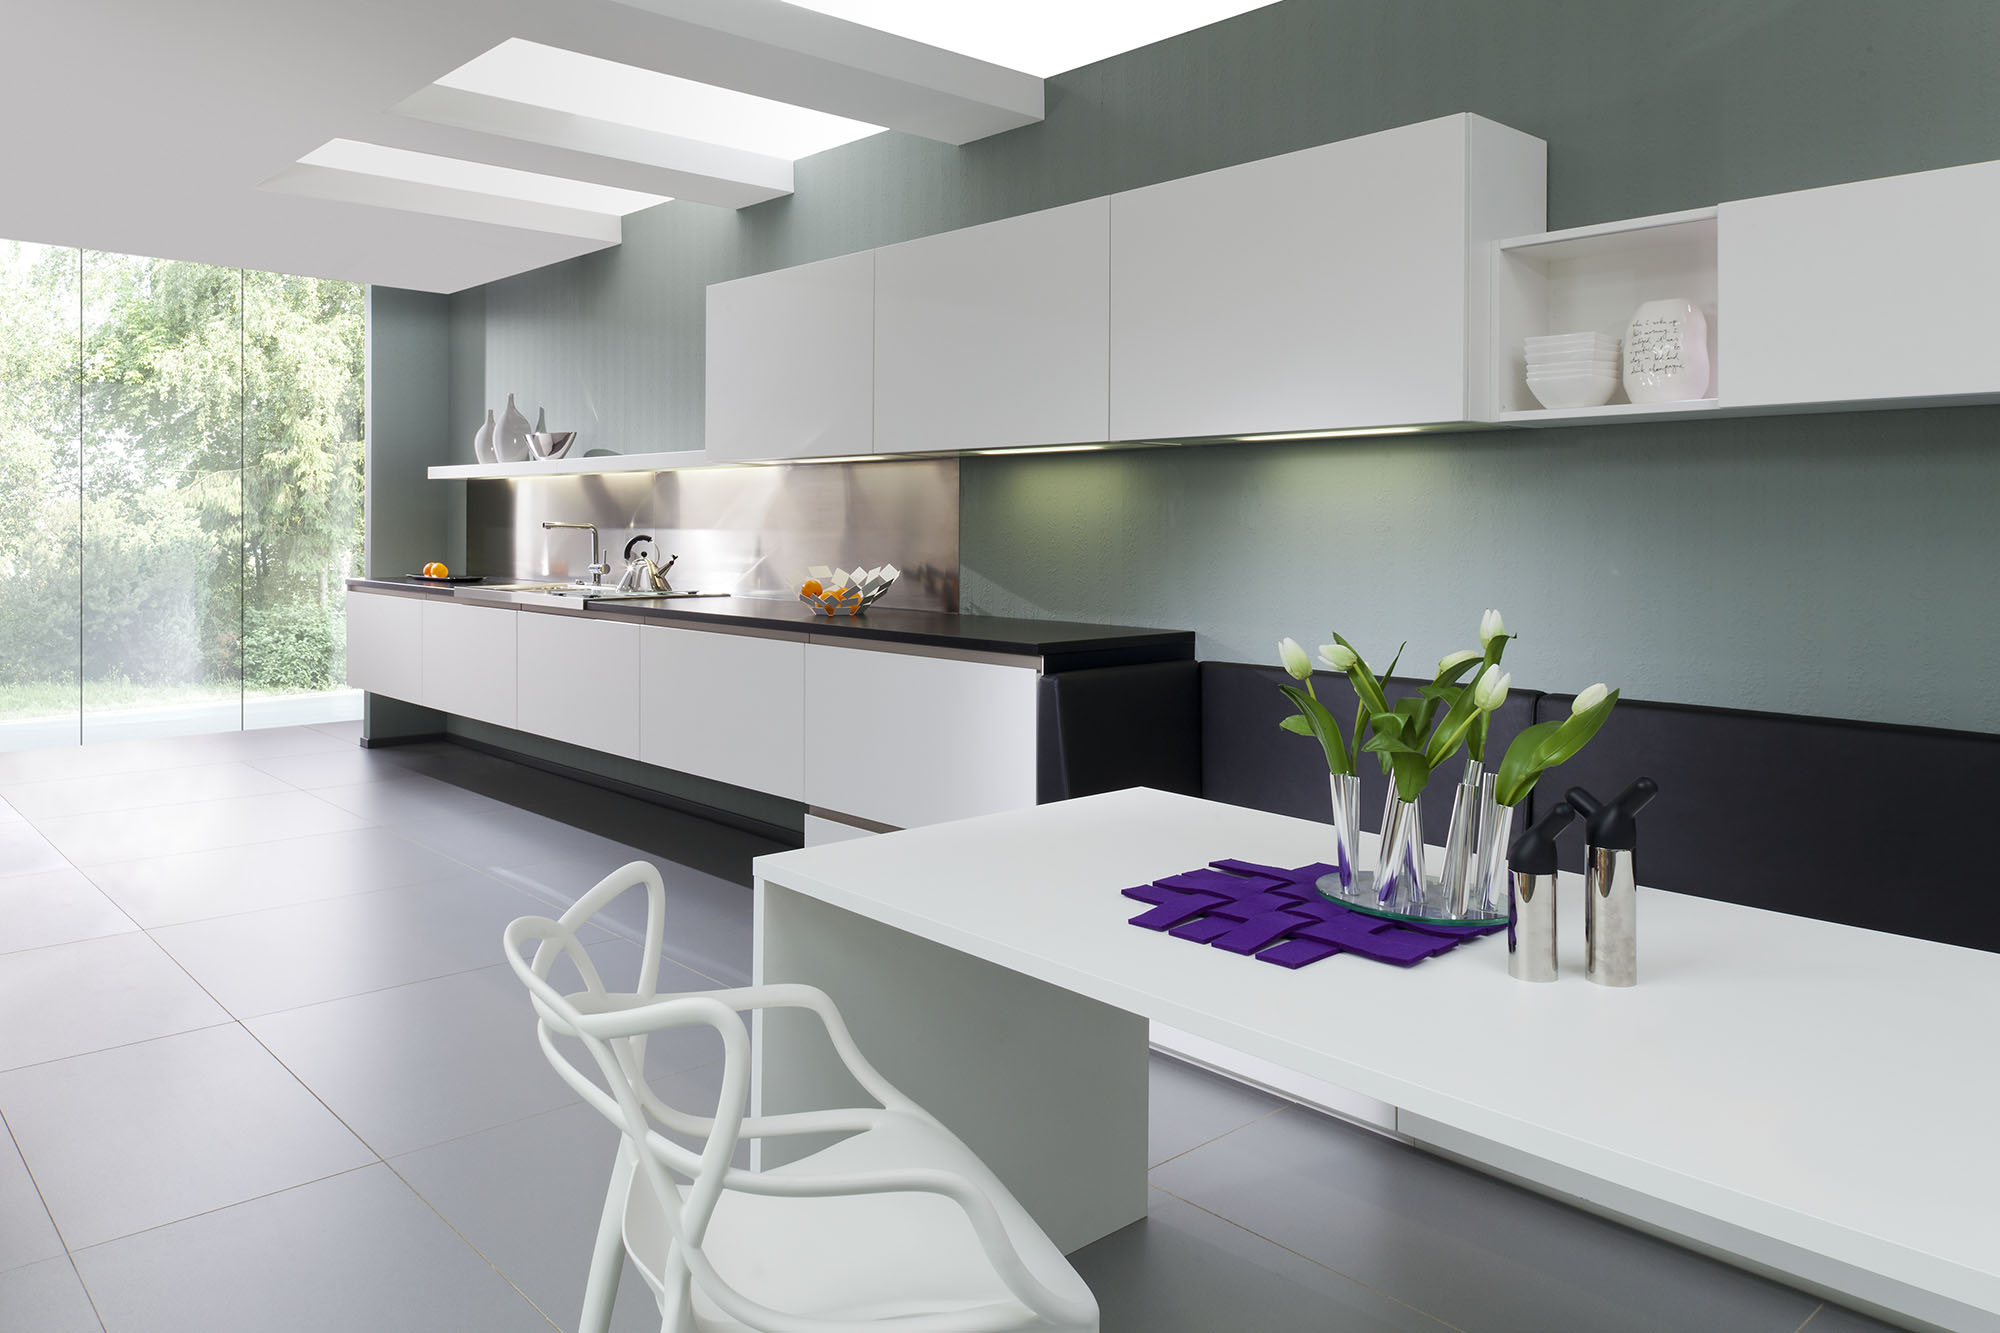 Gloss Or Matt Kitchens: How To Decide Which Is Best For You And Your Home